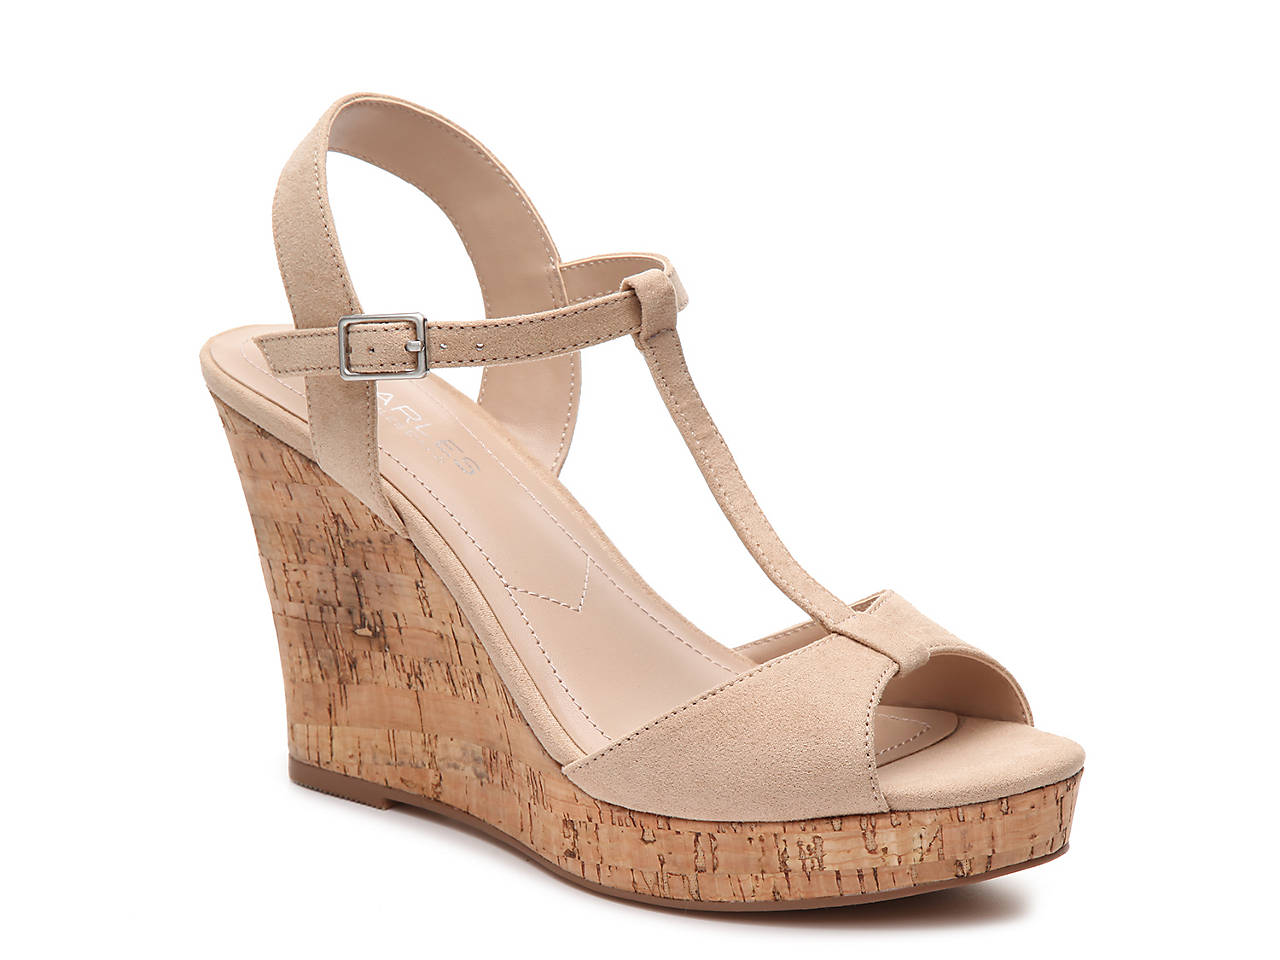 c110daa76 Charles by Charles David Lucas Wedge Sandal Women's Shoes | DSW